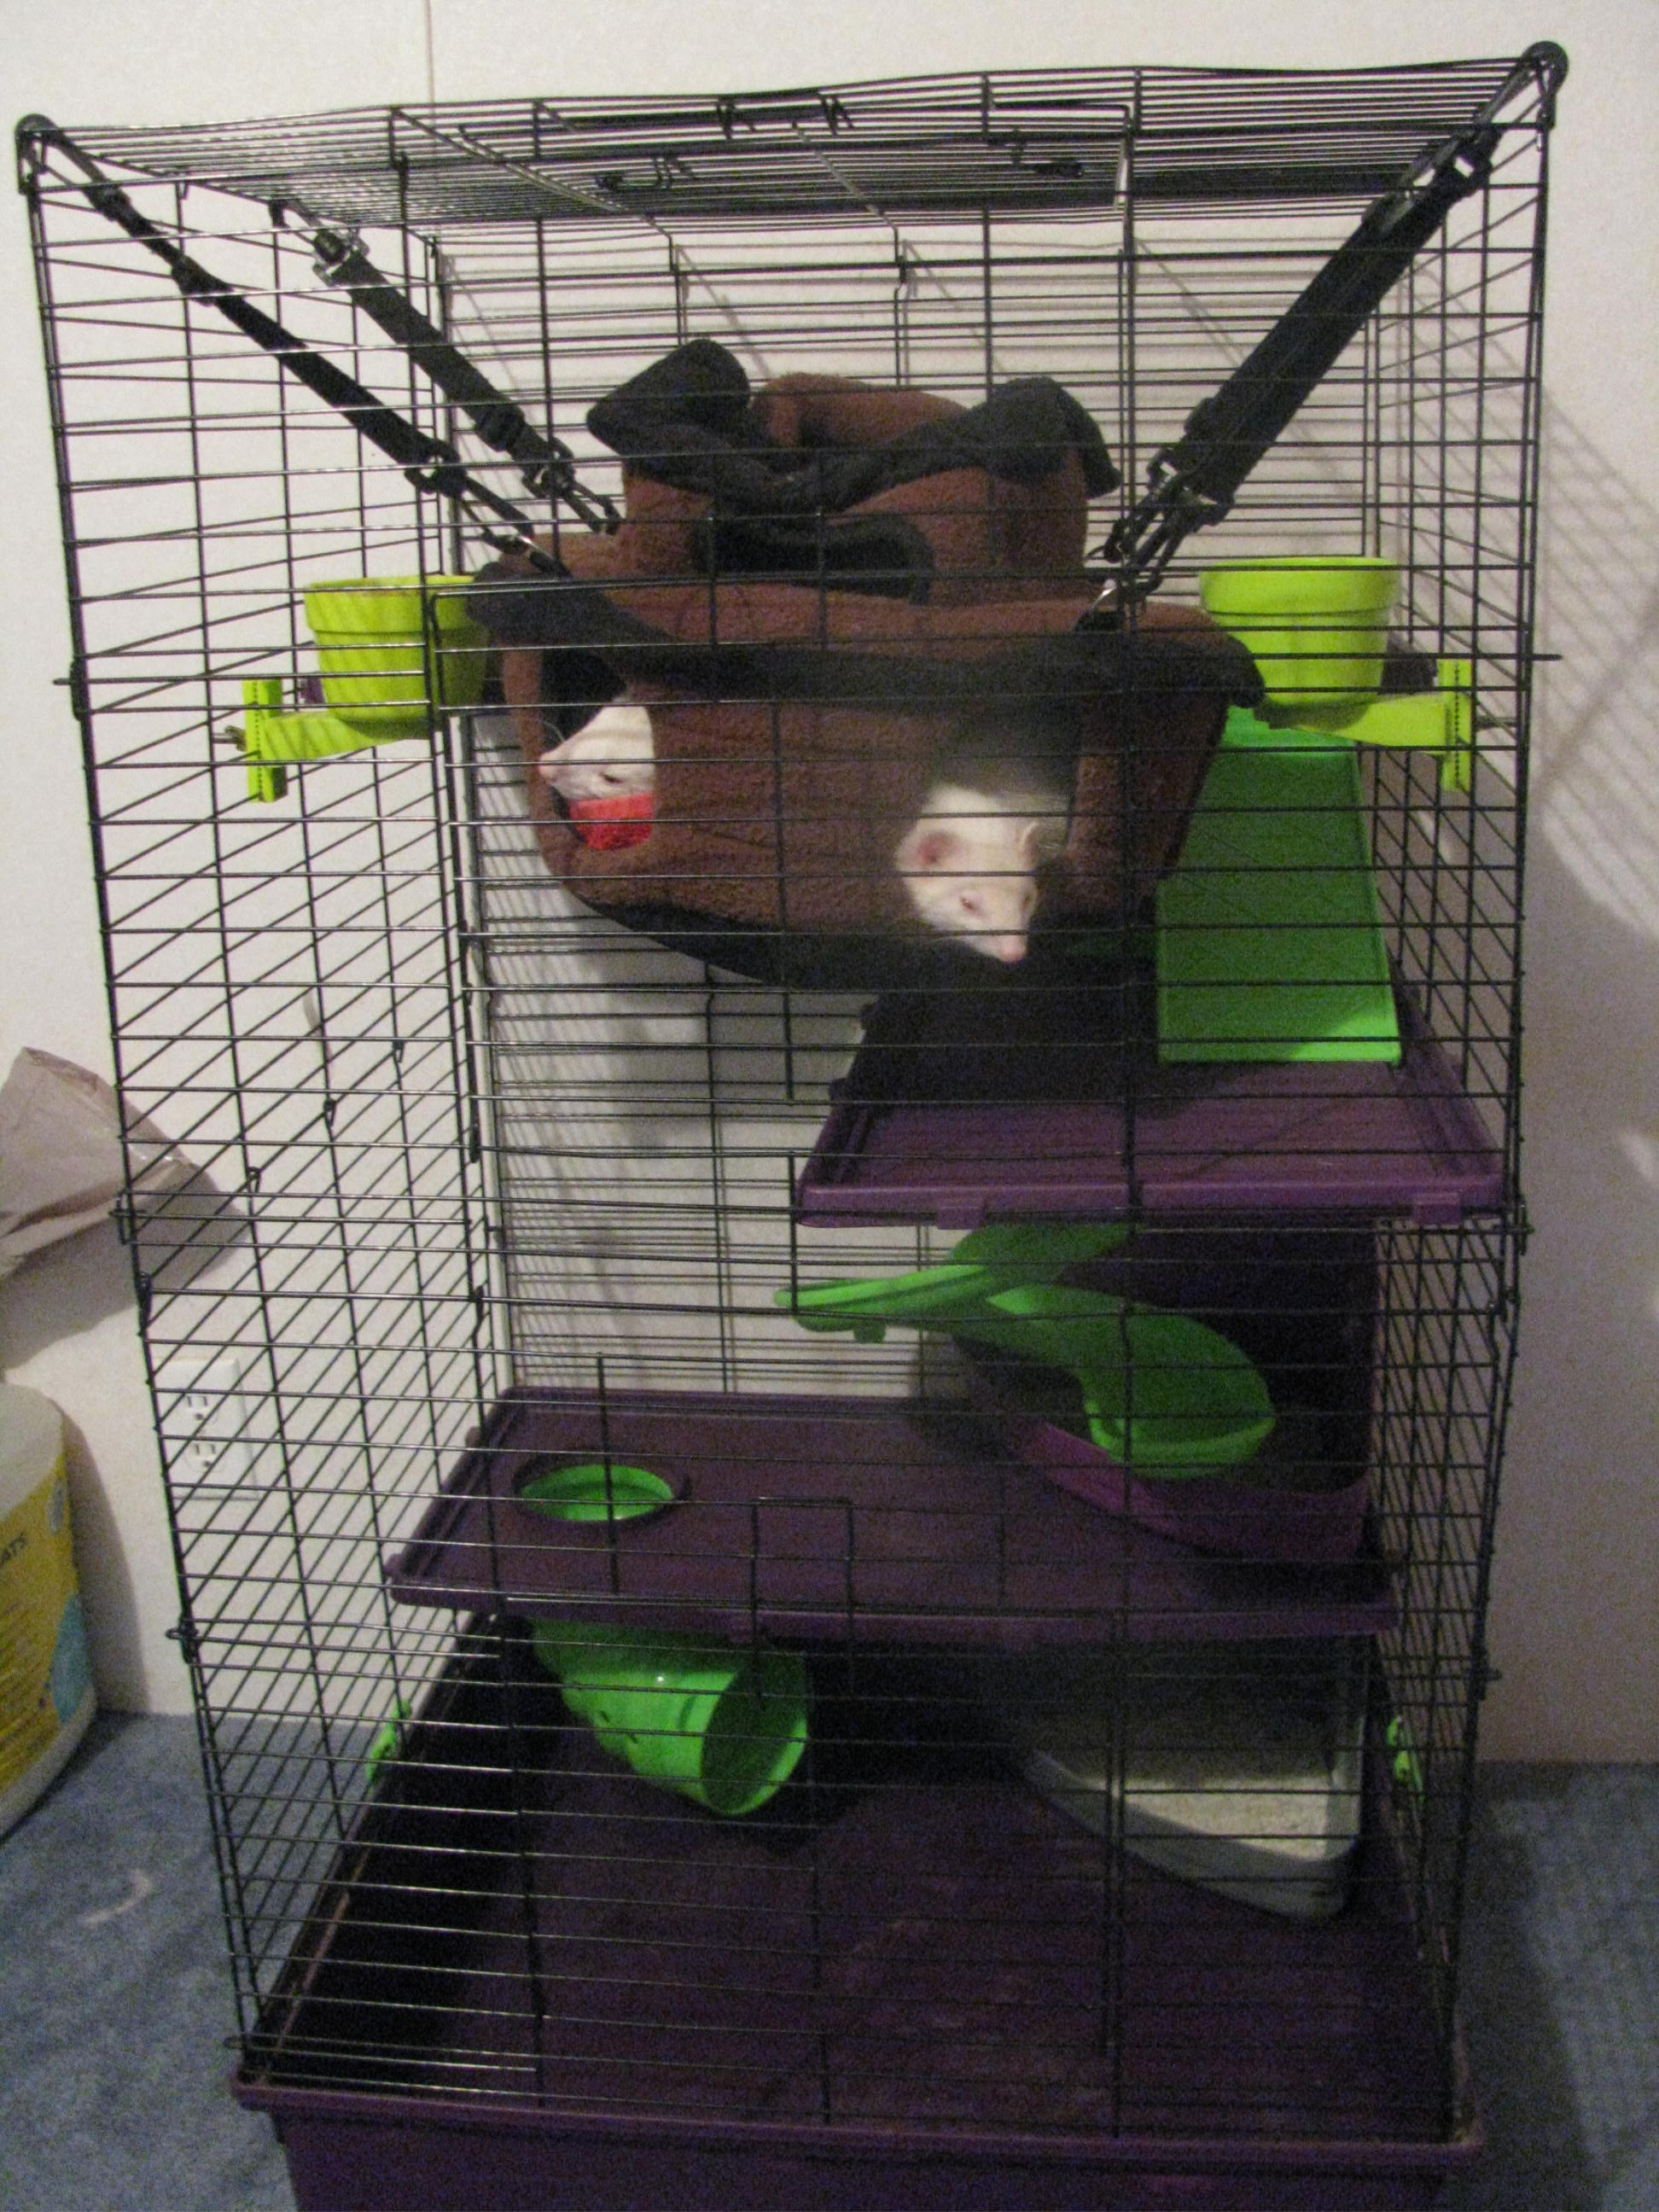 Cleaning Ferret Cage The Ferret Zone